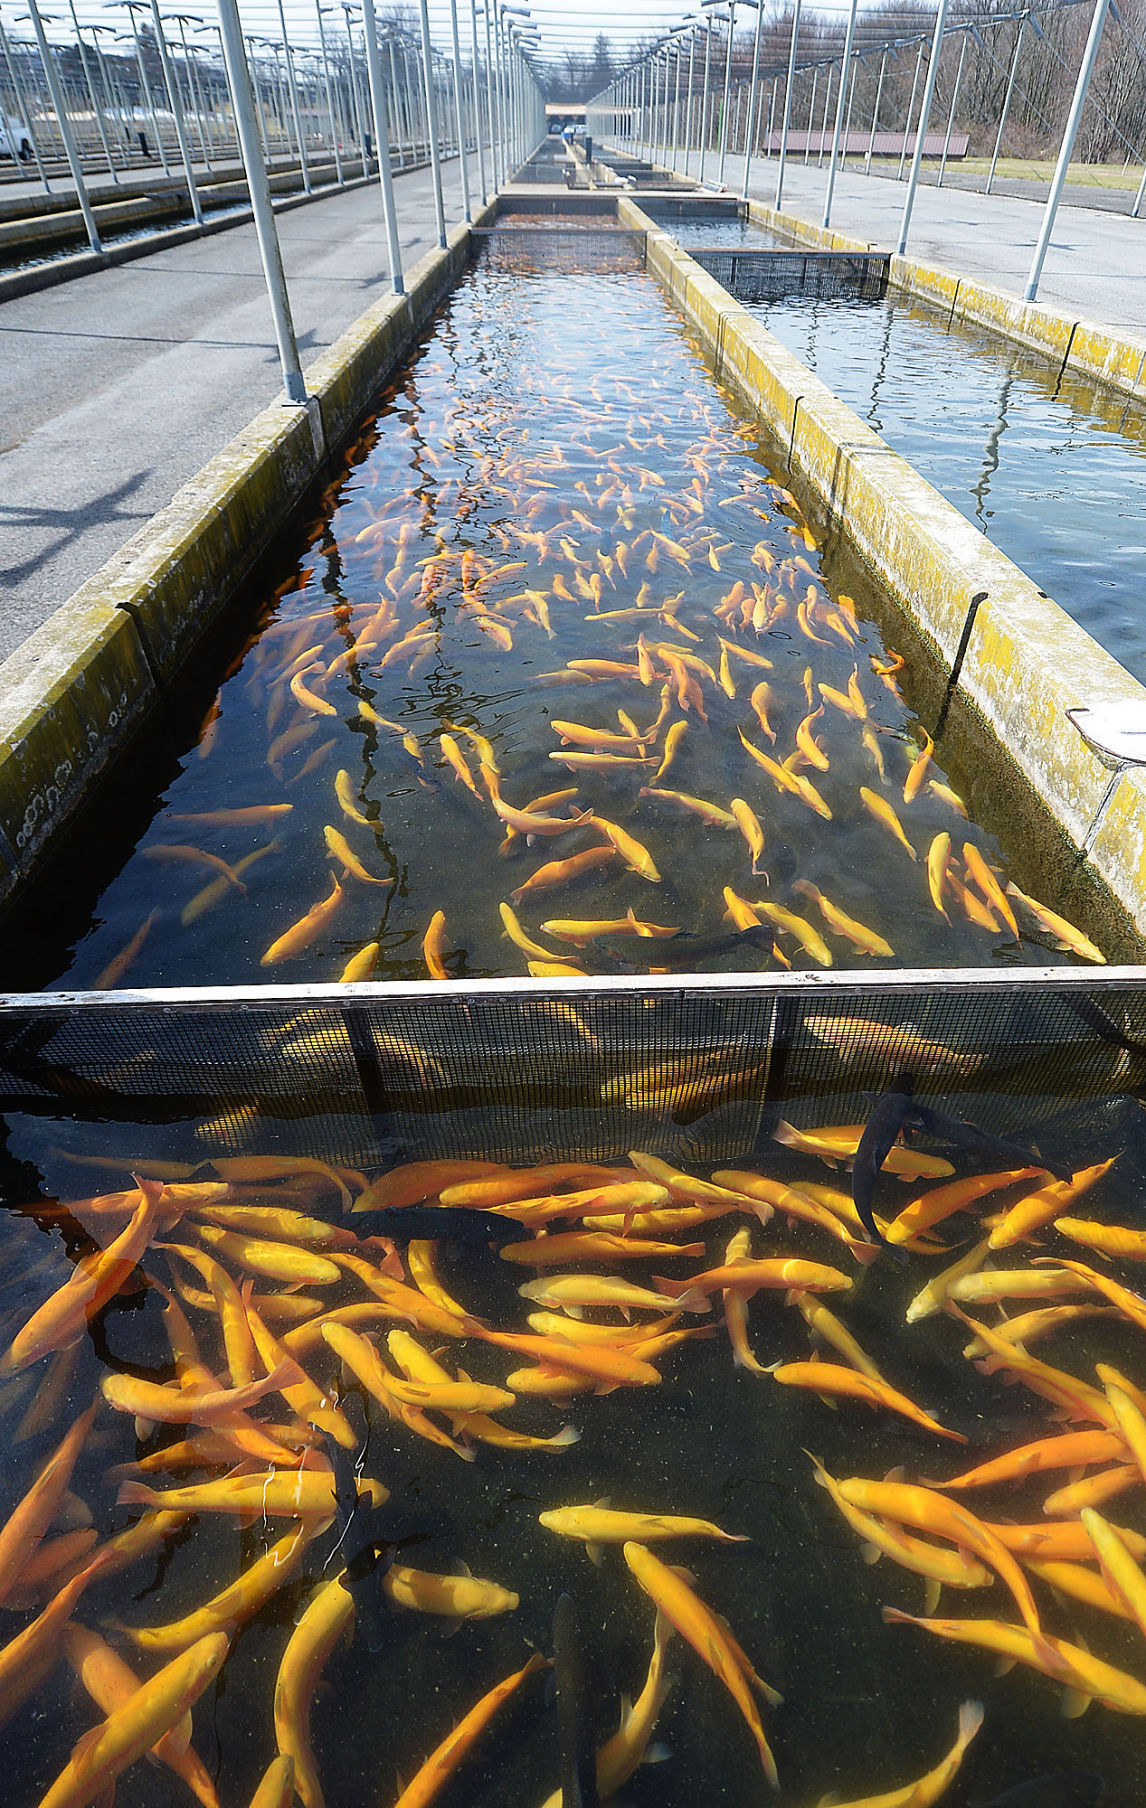 Hatchery has raising fish down to a science | Newville ...